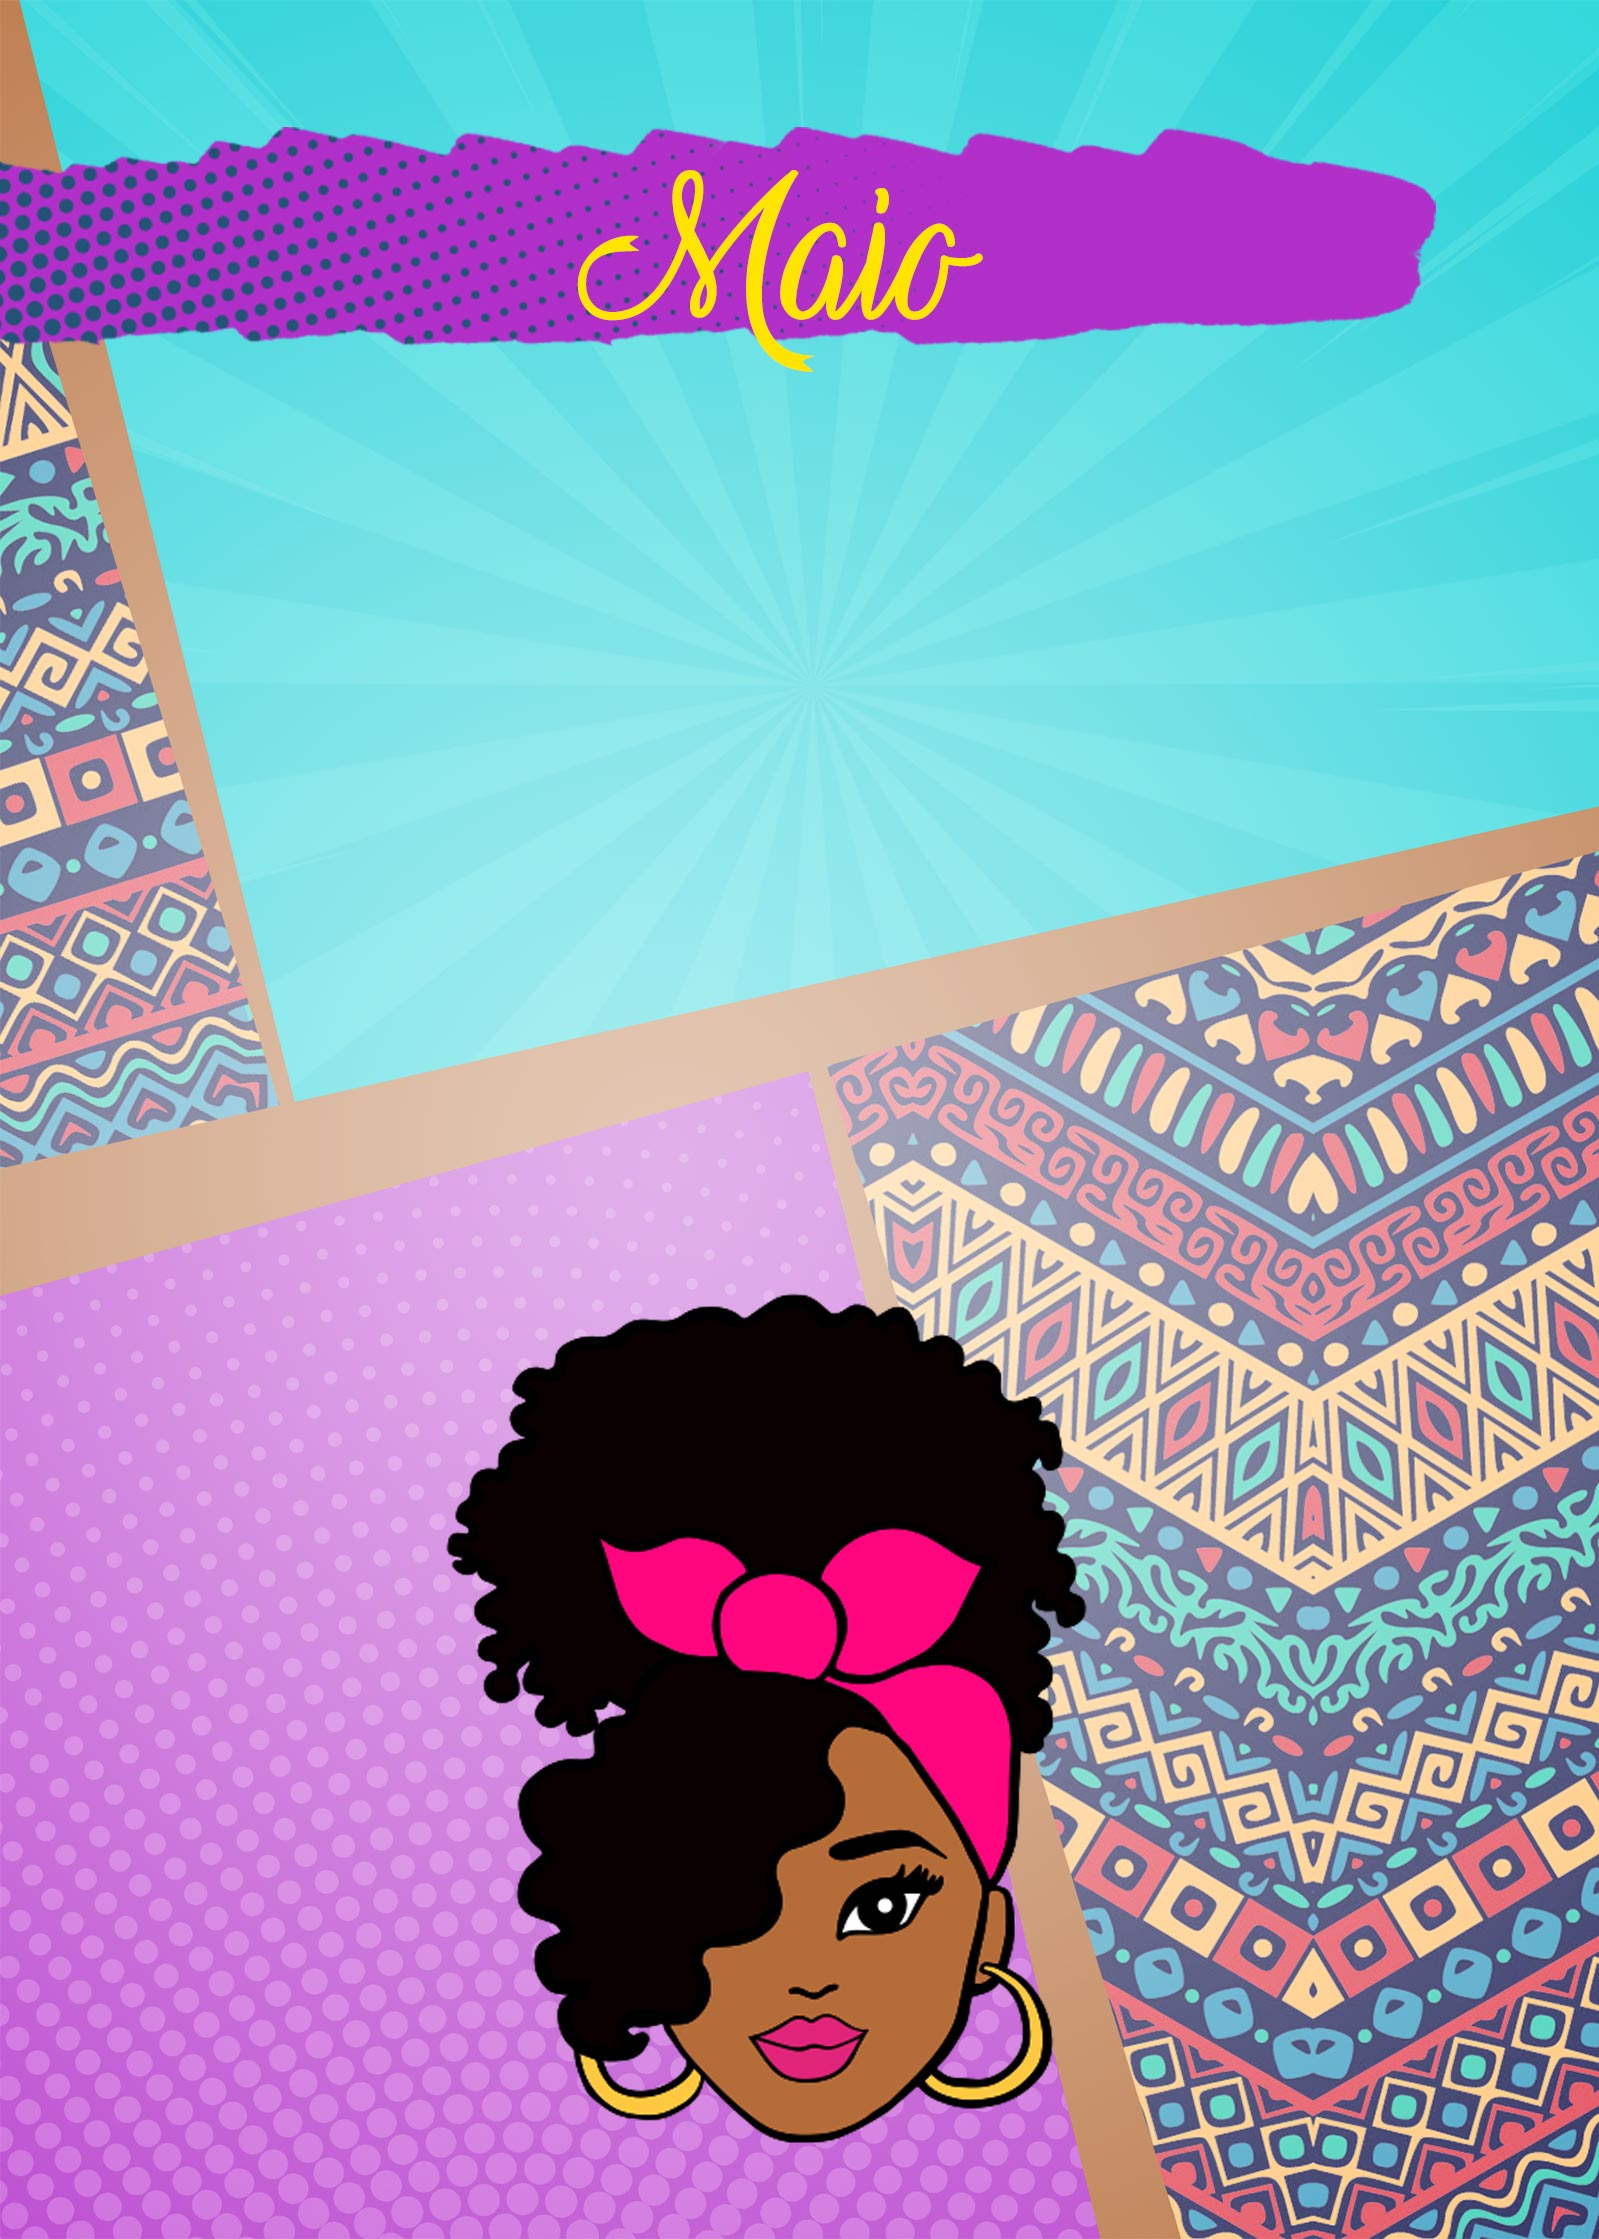 Planner Mulher Afro Capa Maio